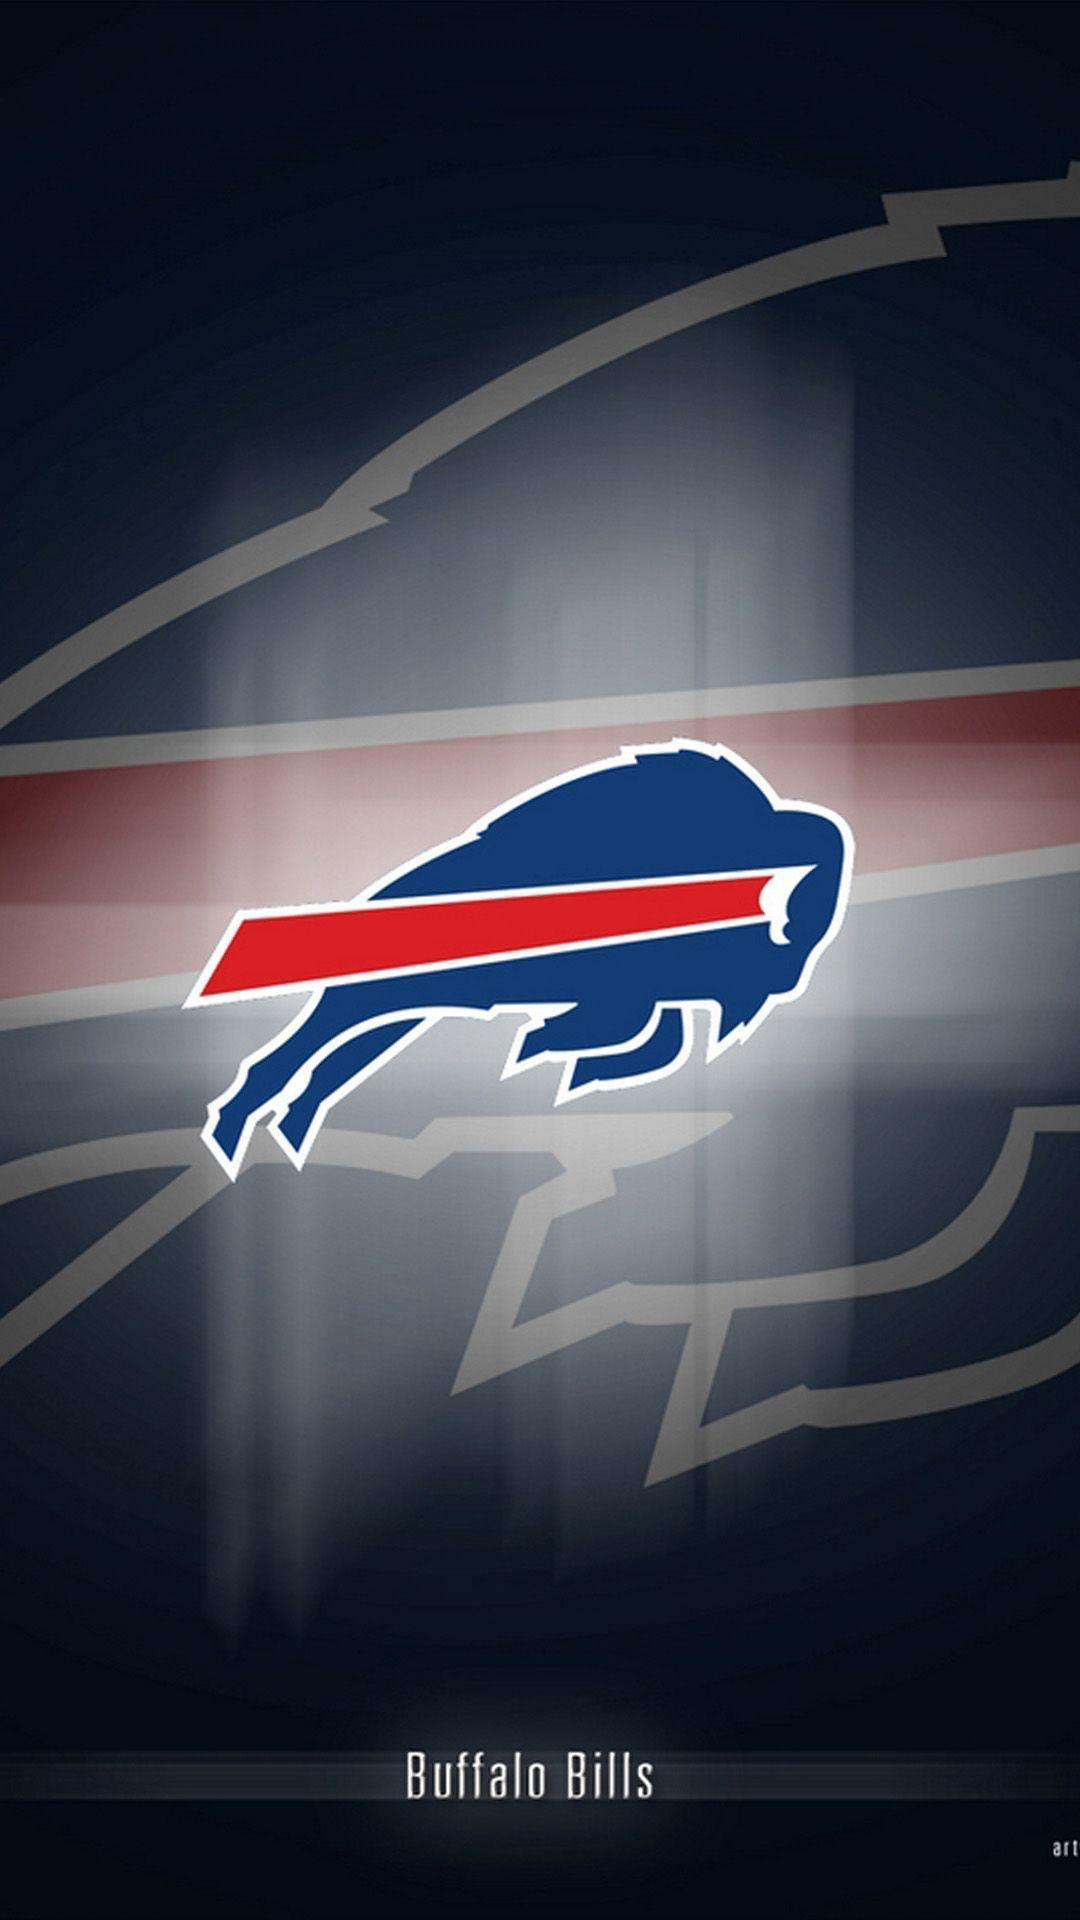 Buffalo Bills Samsung Wallpapers, Samsung Galaxy S5, Galaxy S4